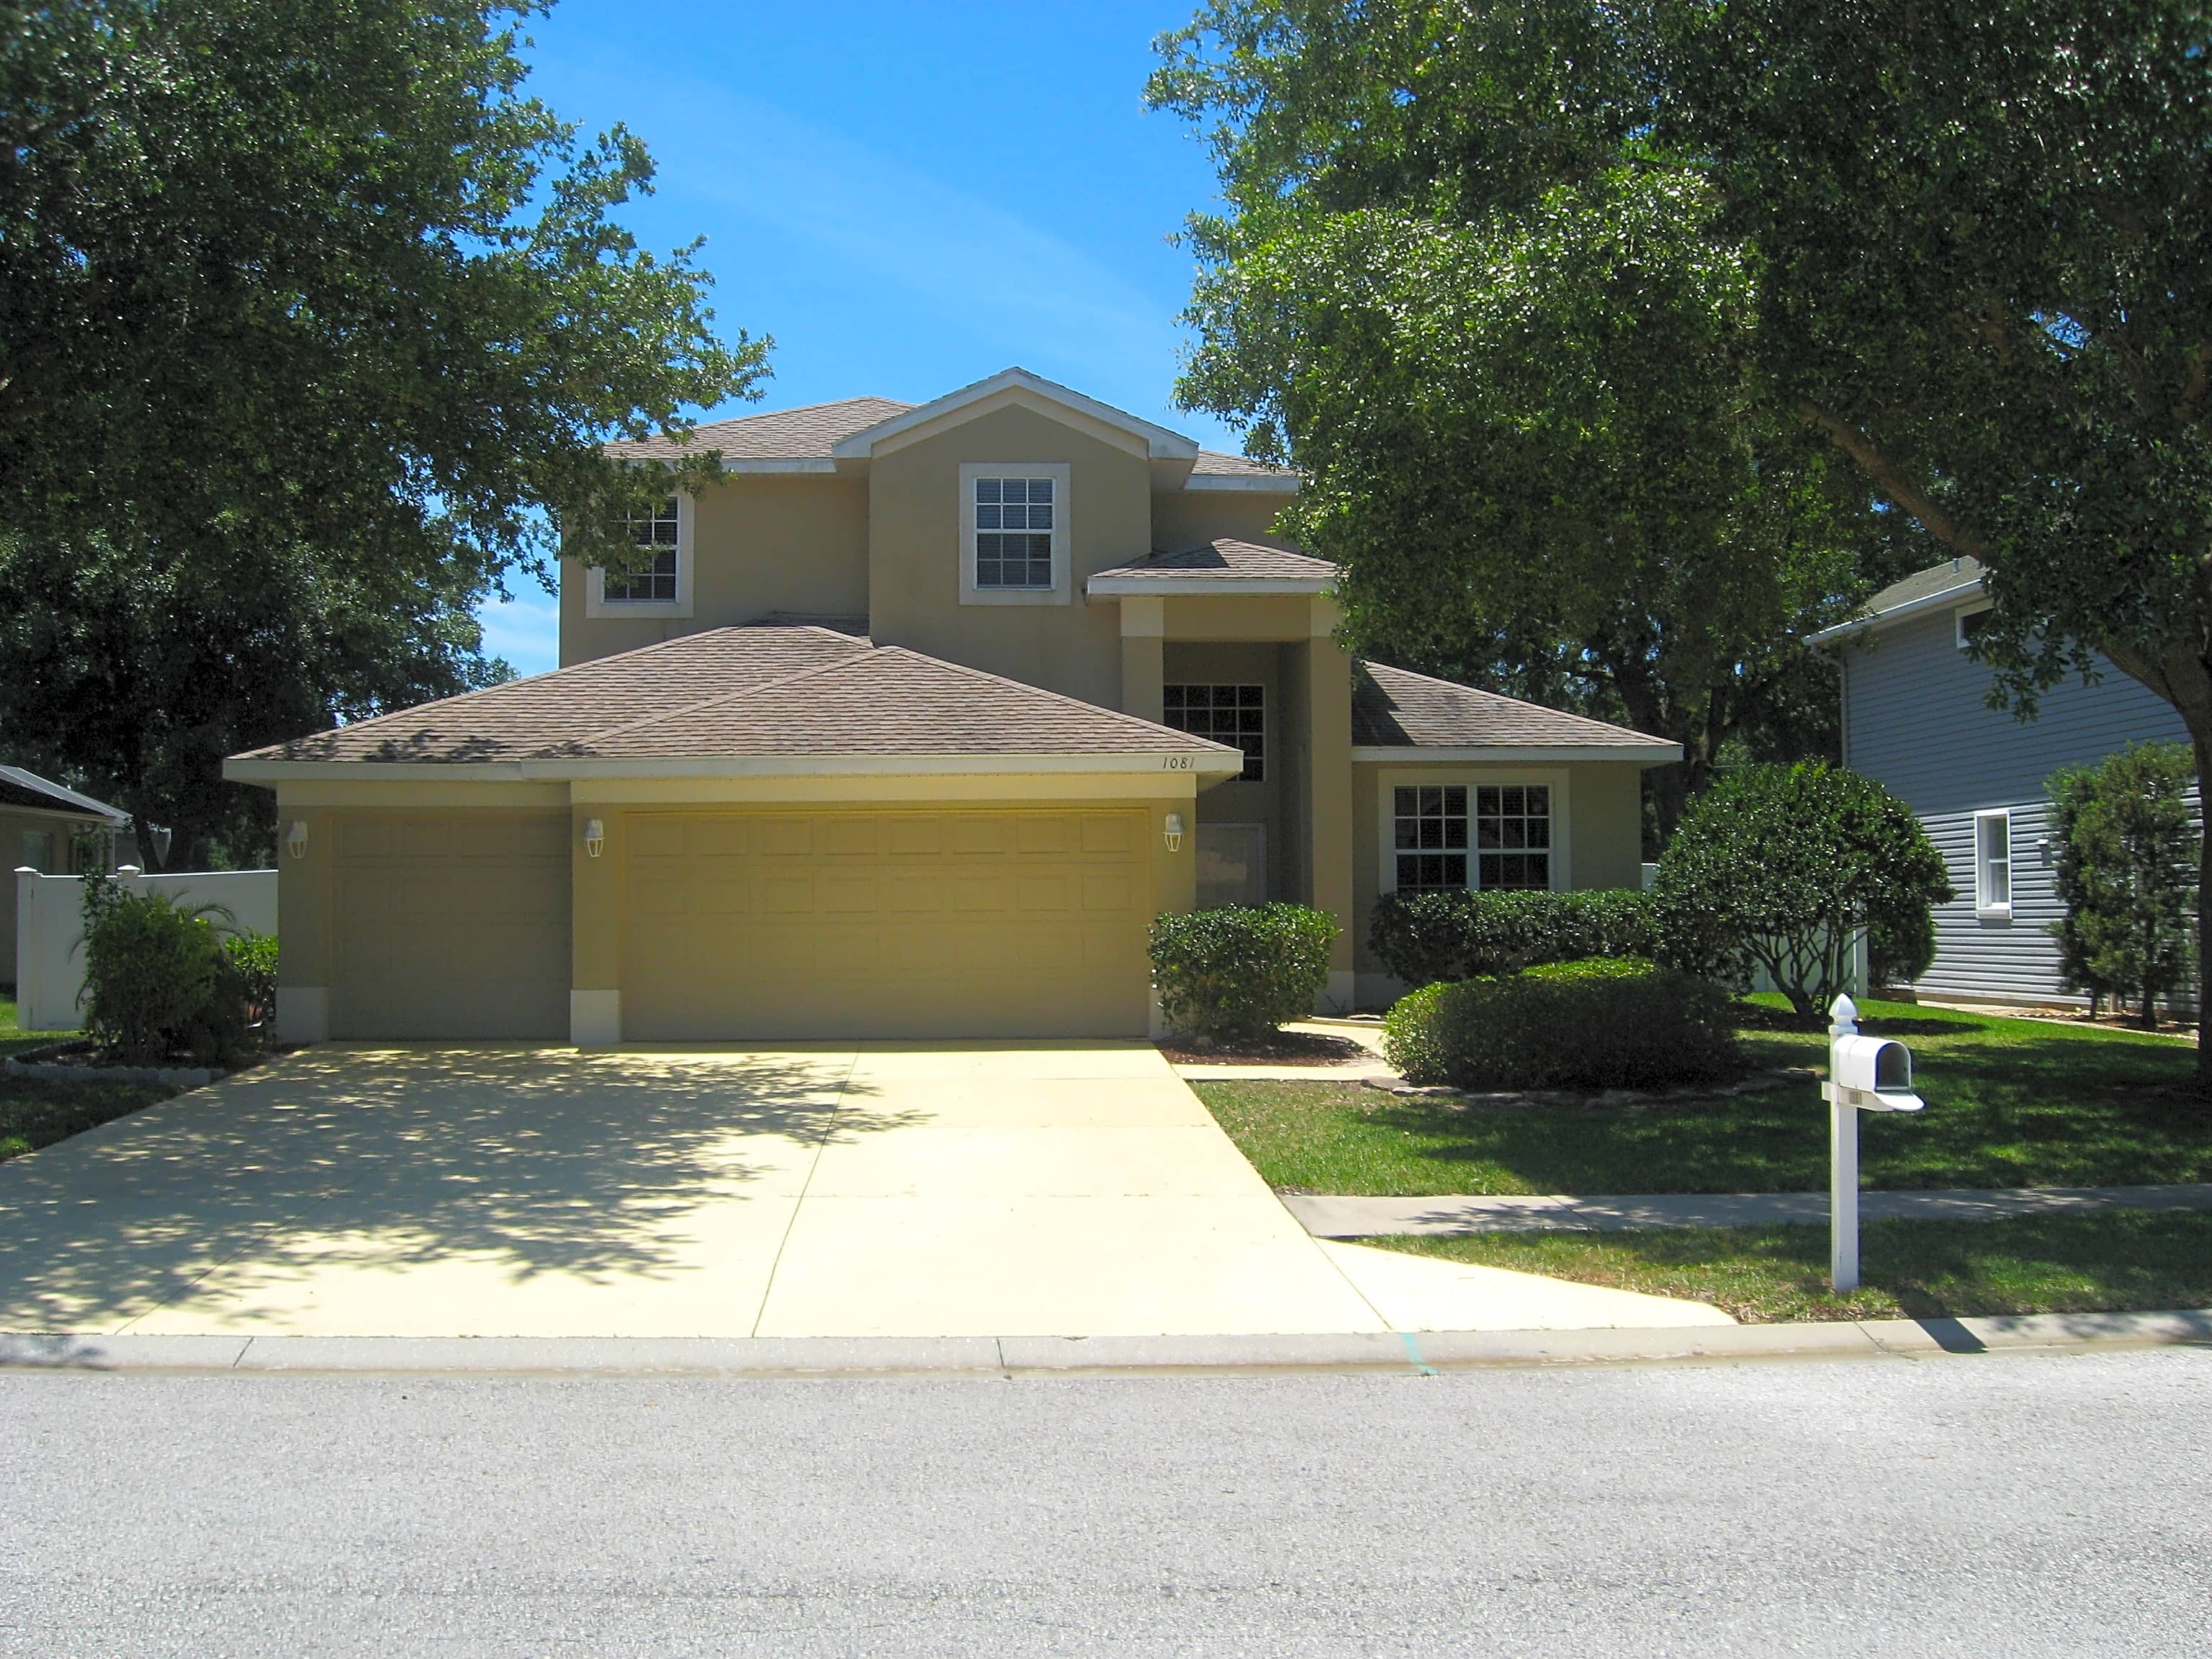 Tarpon Springs Houses For Rent In Tarpon Springs Florida Rental Homes